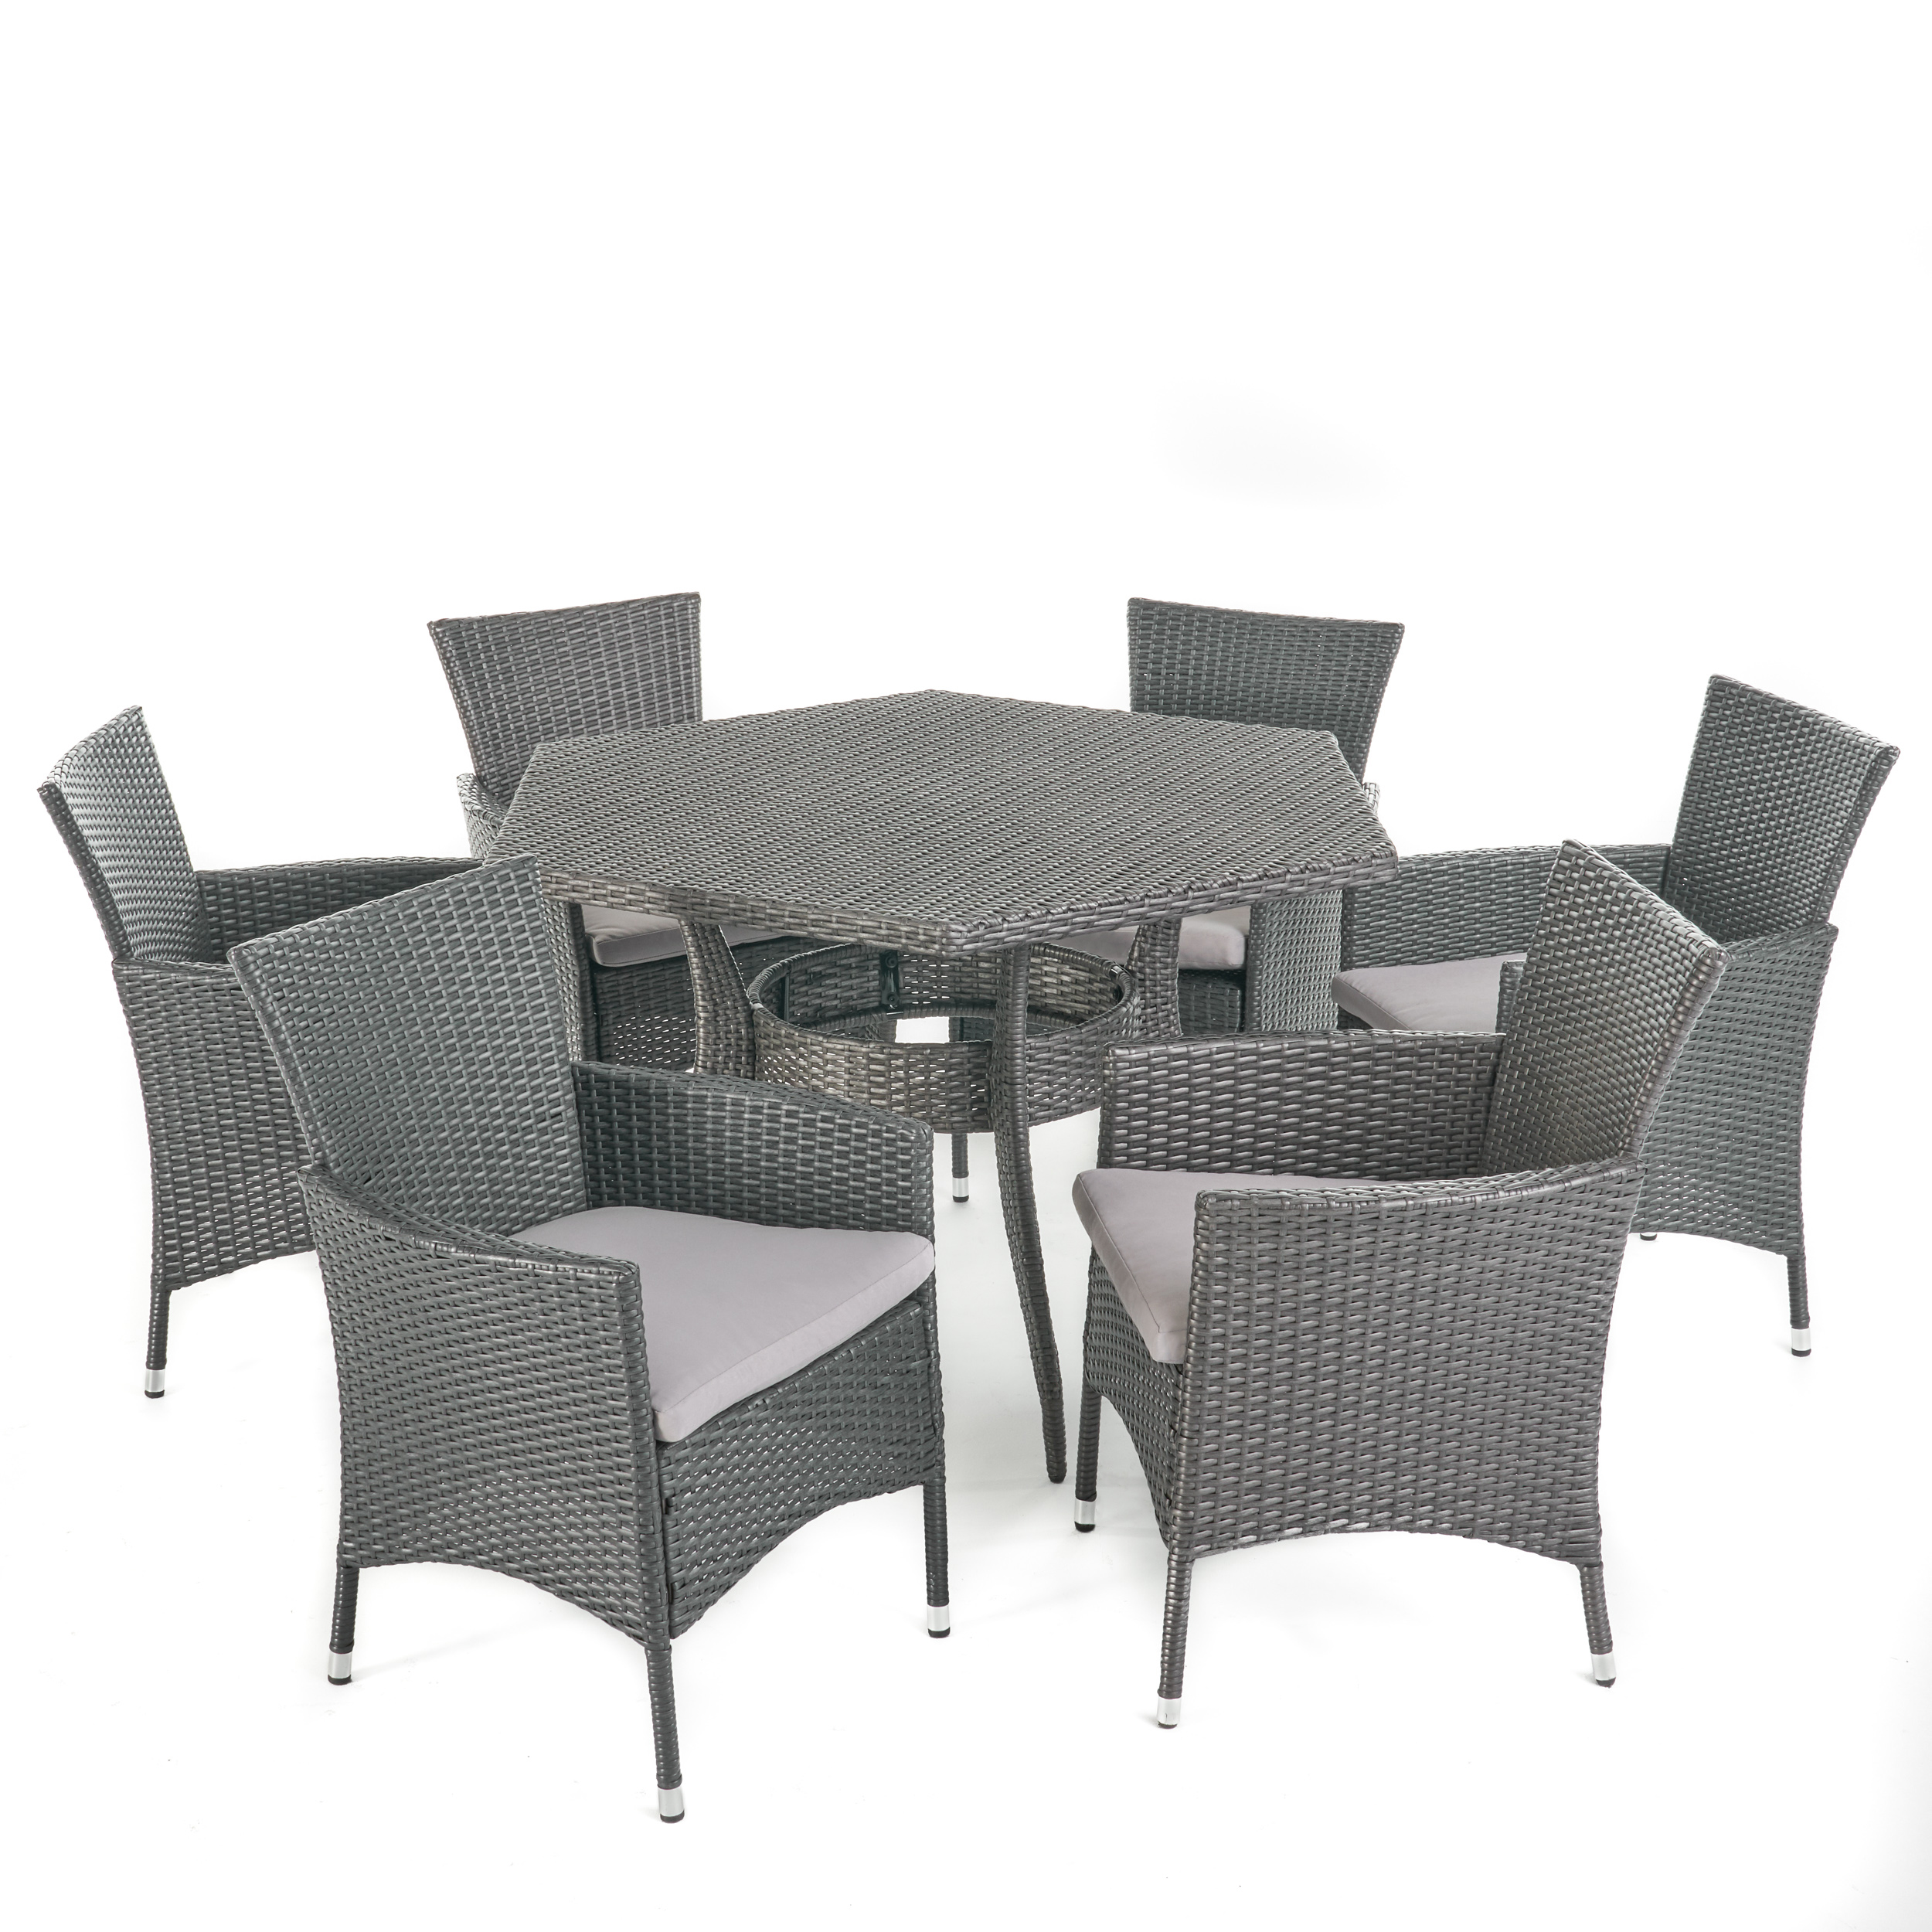 Delilah Outdoor 7 Piece Wicker Hexagon Dining Set With